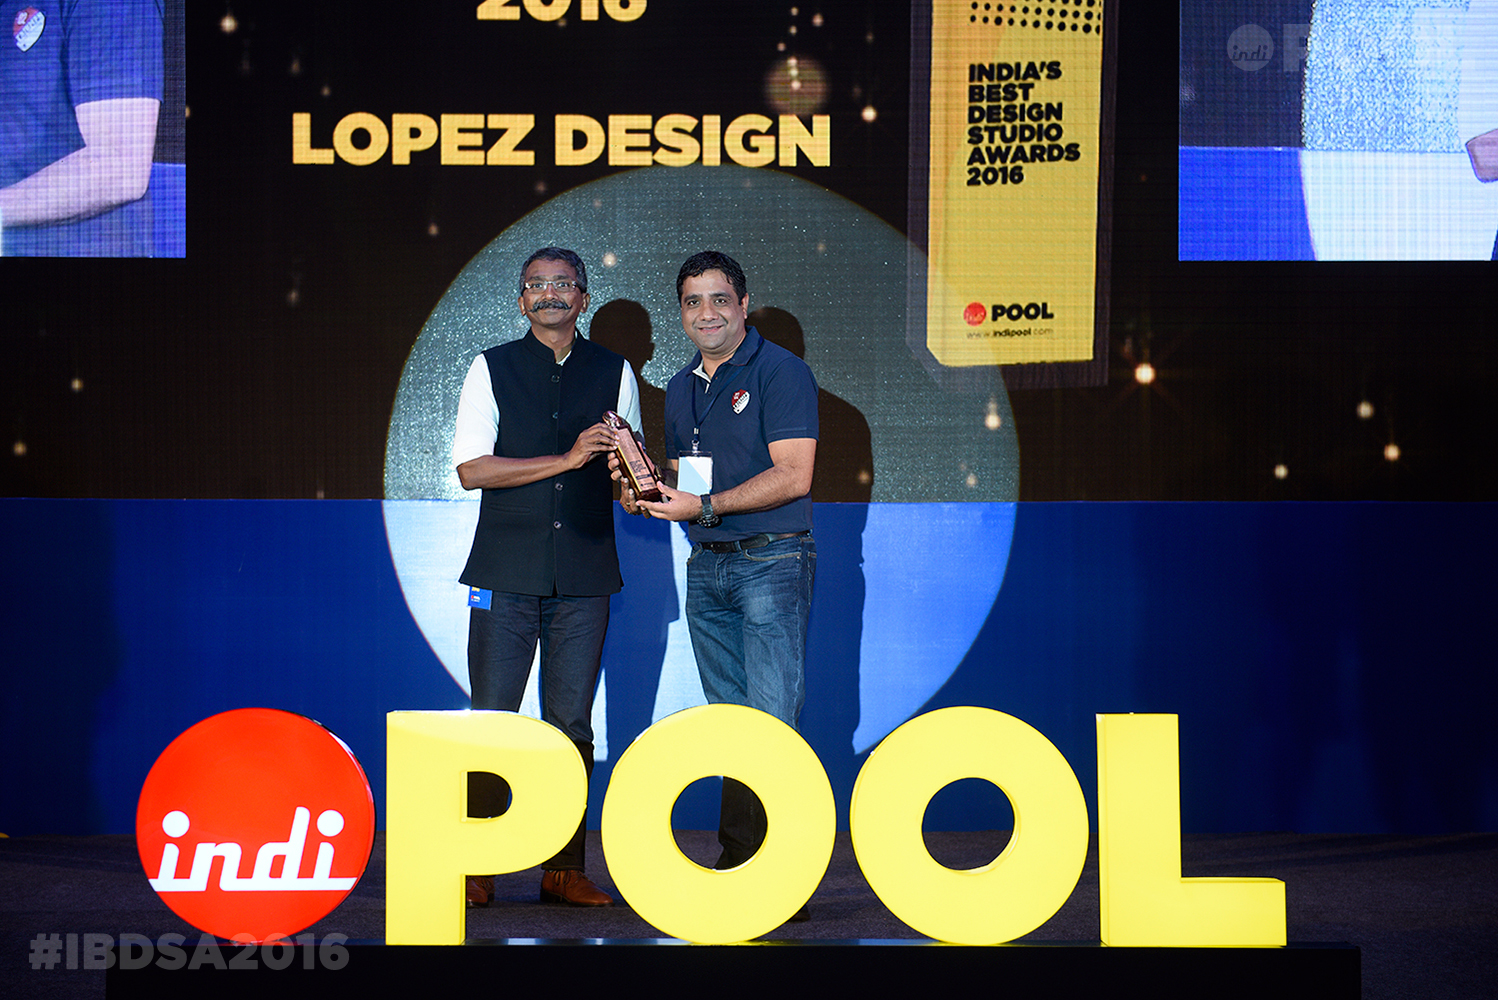 India's Best Graphic Design Studio 2016 - Lopez Design